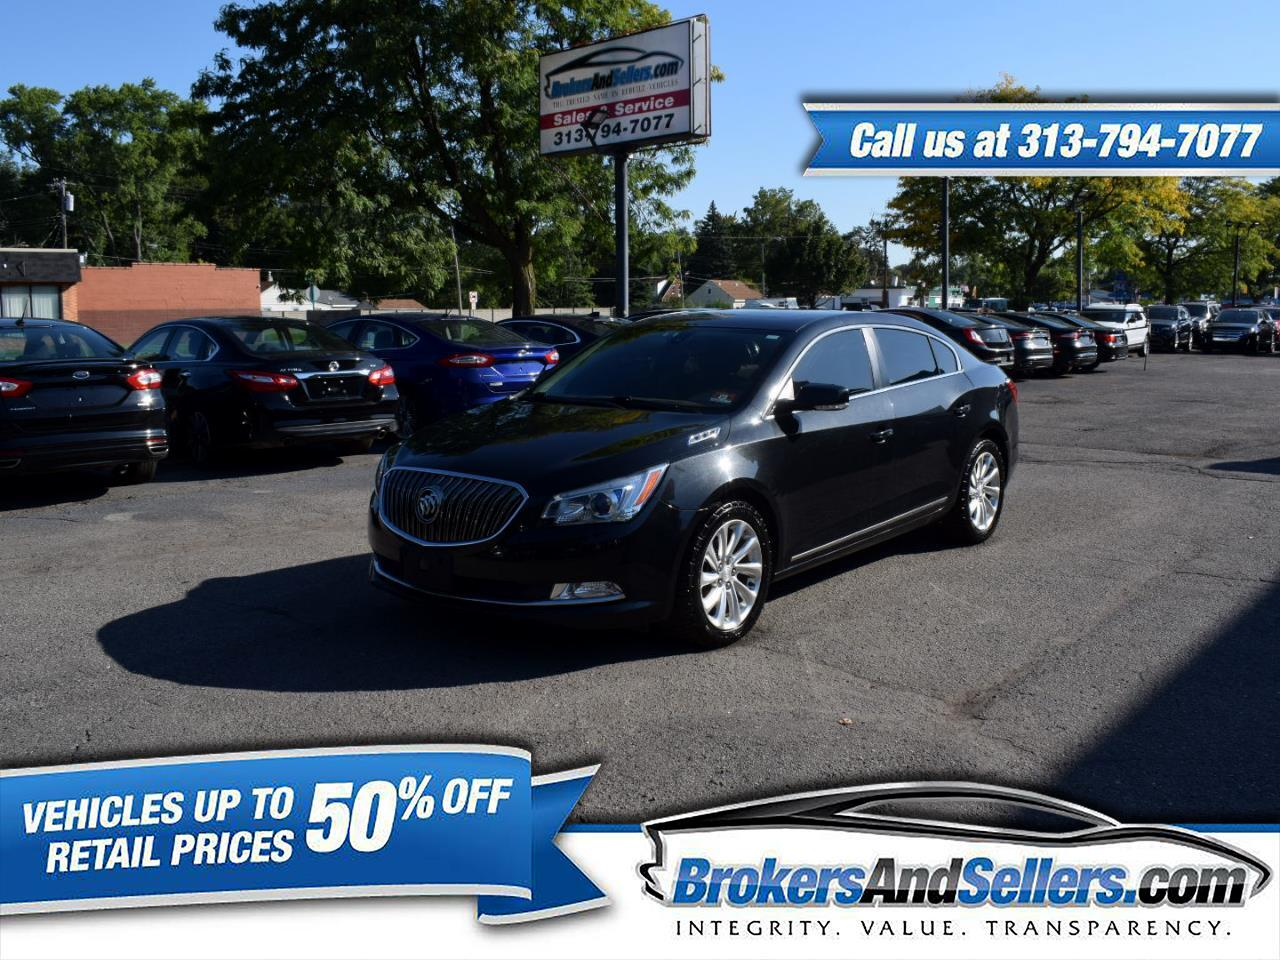 2014 Buick LaCrosse 4dr Sdn Leather FWD